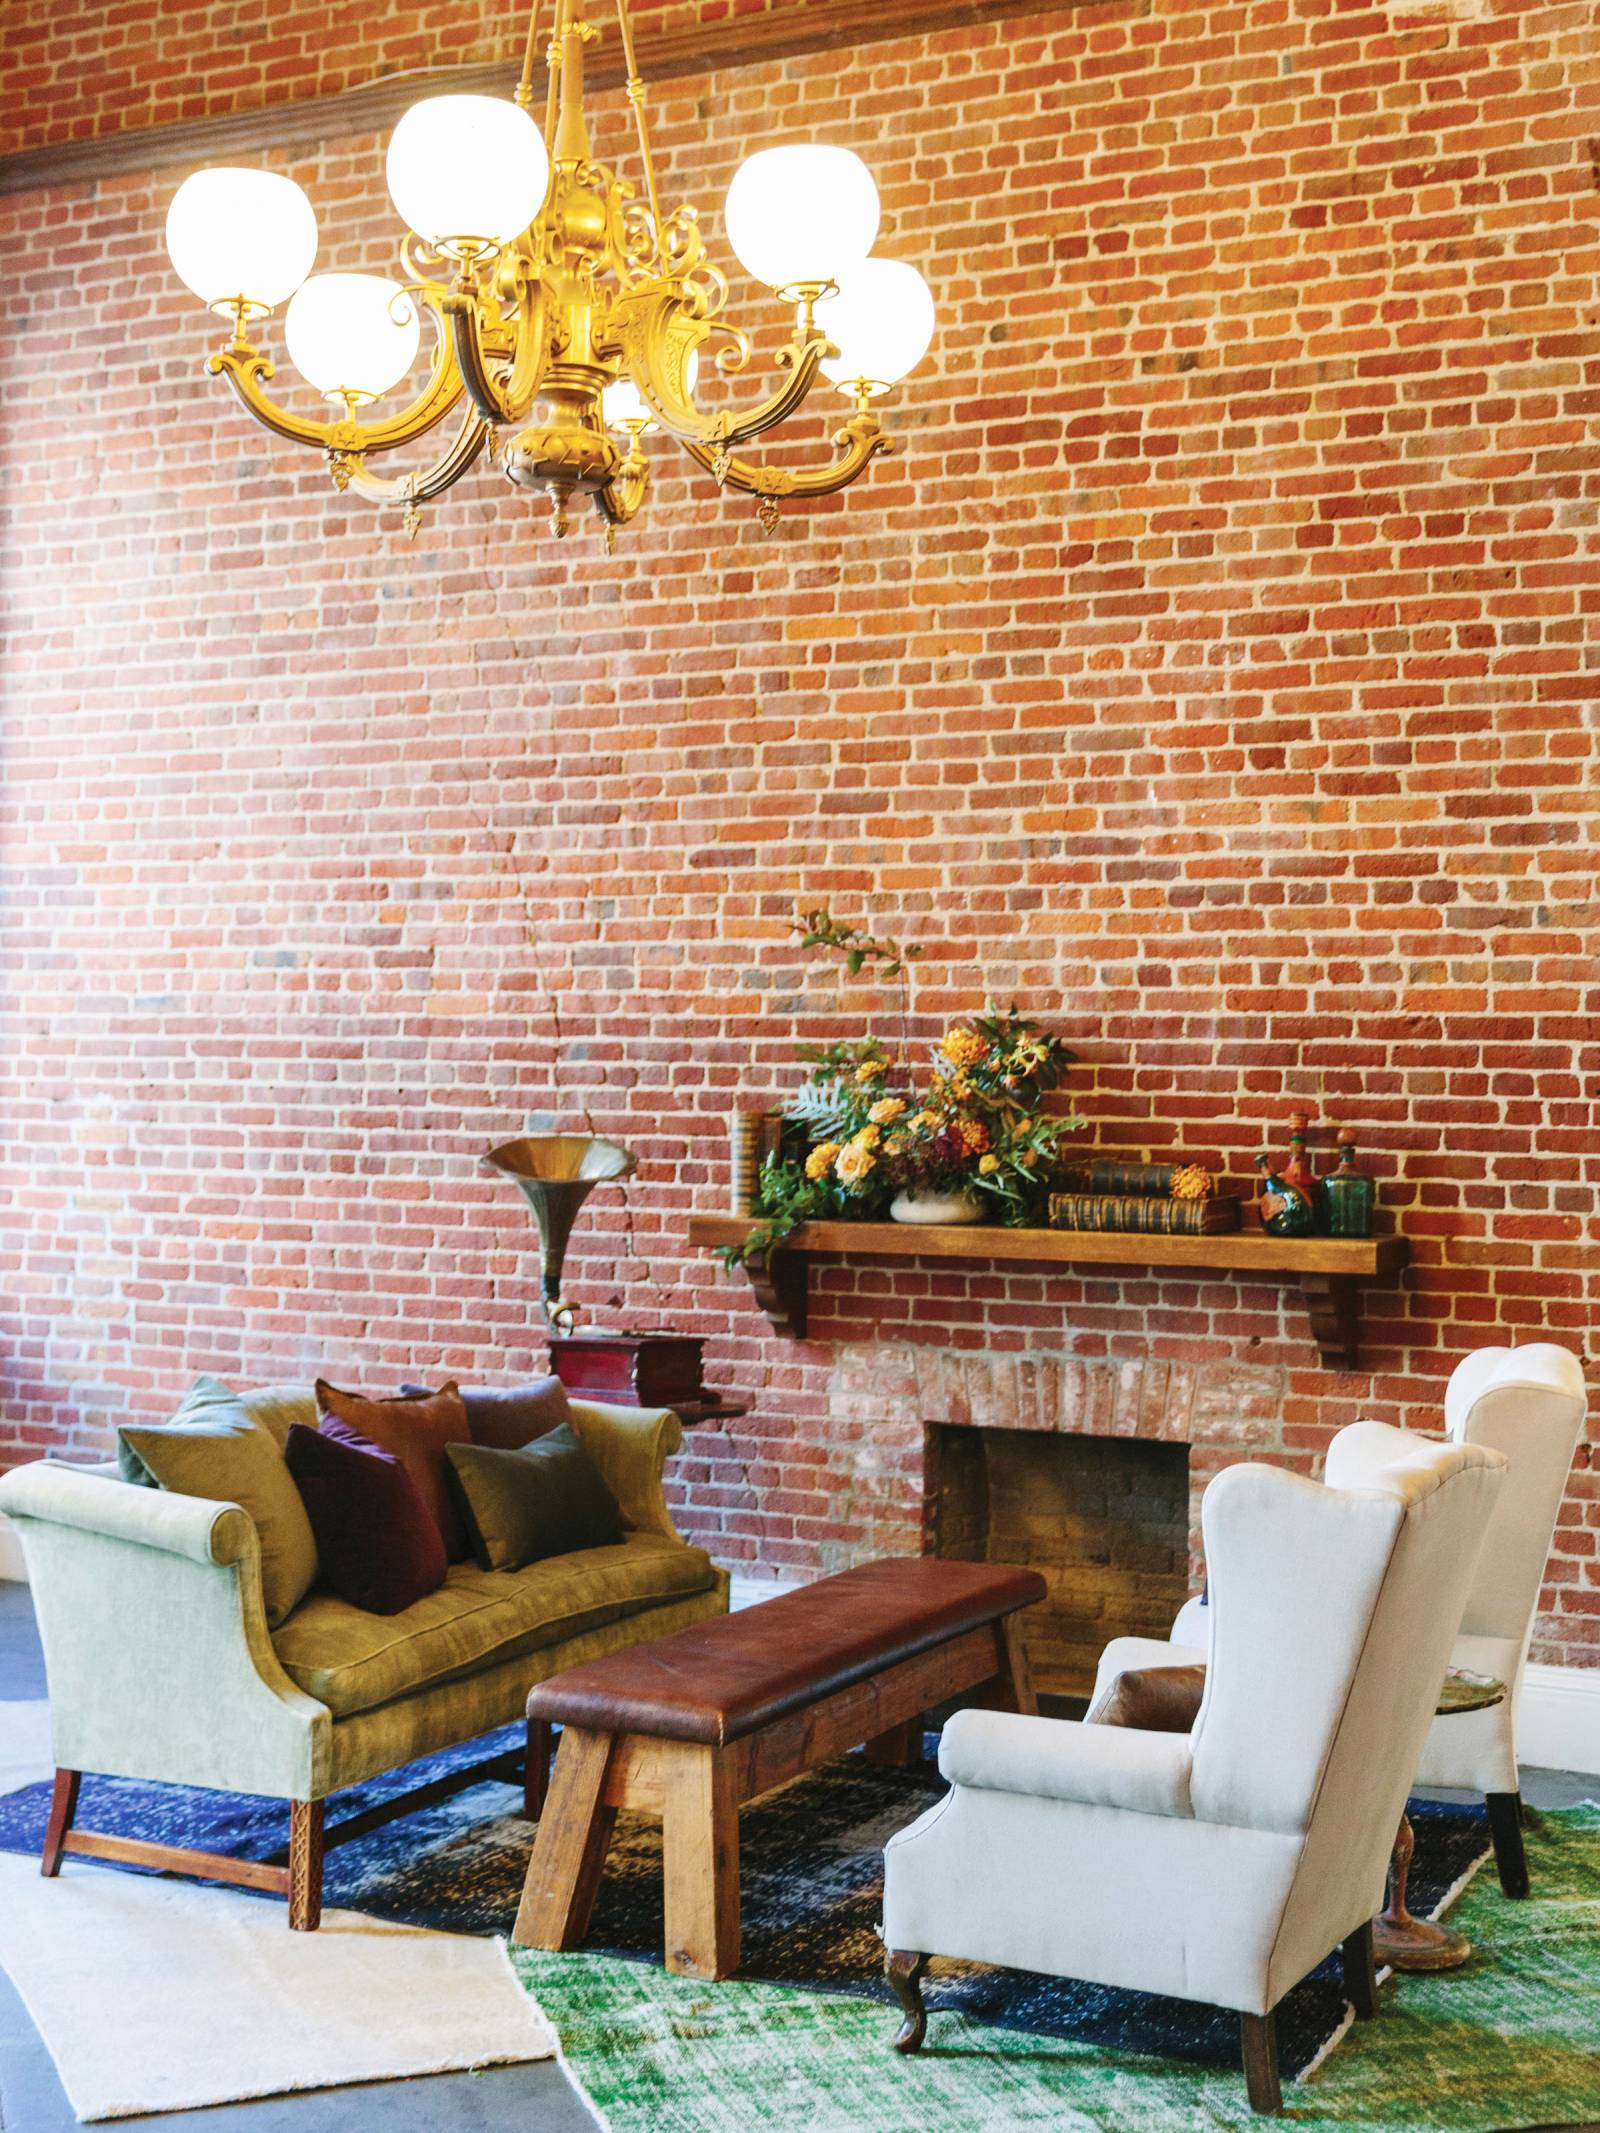 Vintage sage green couch and cream velvet chairs by brick wall